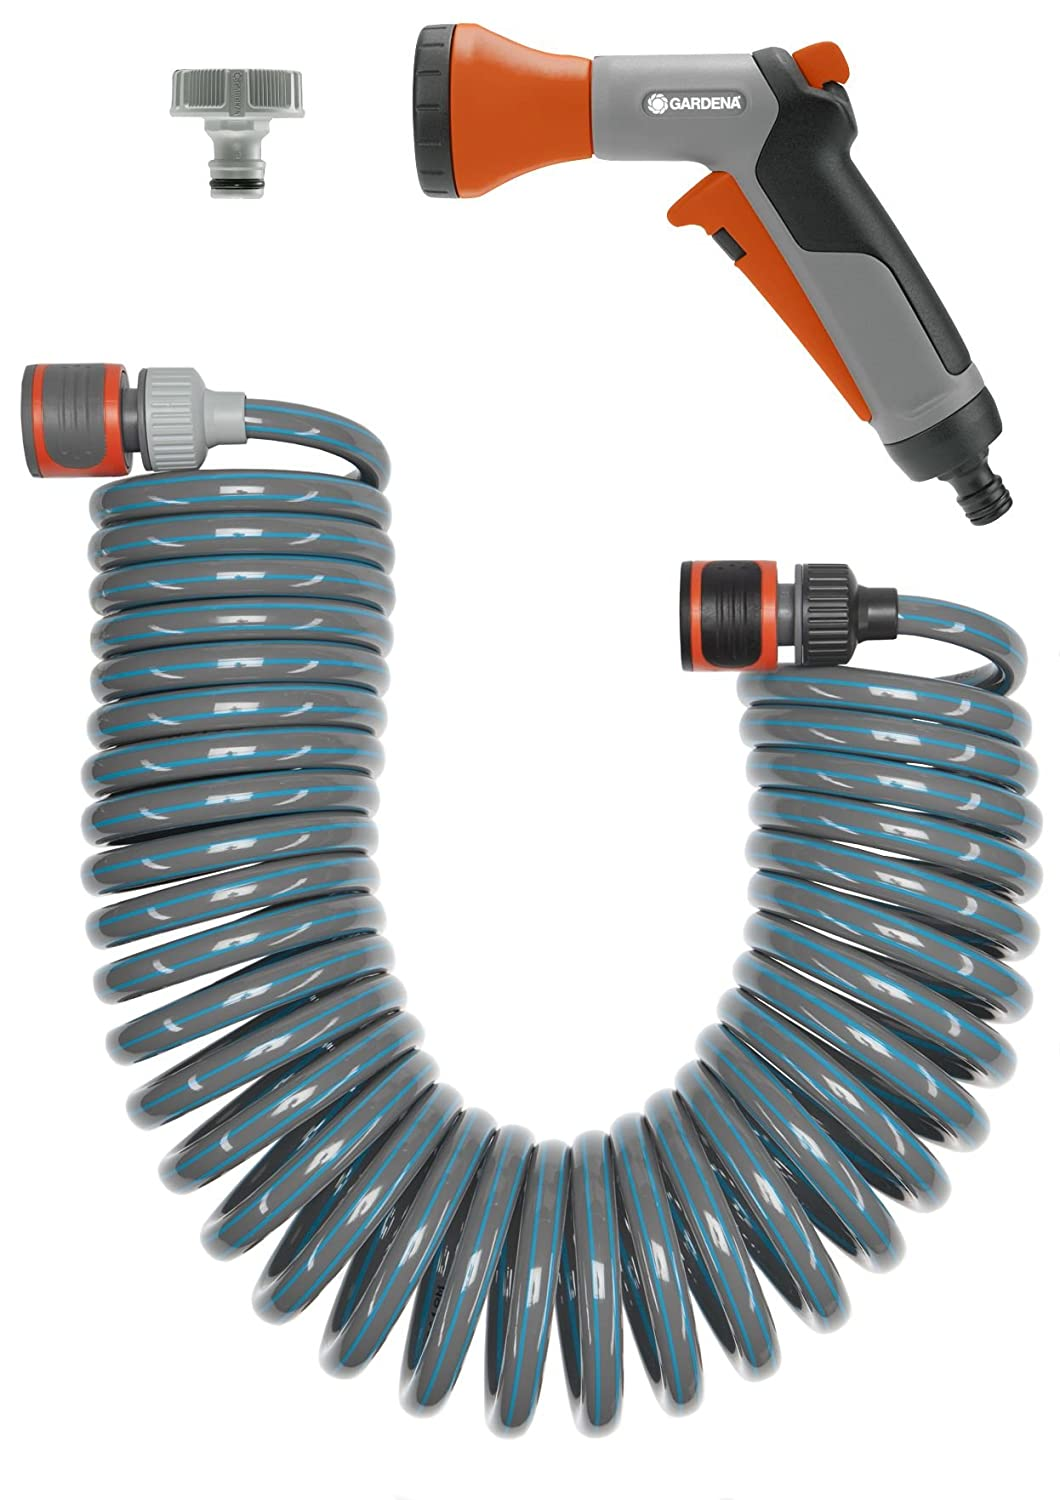 GARDENA city gardening Terrace Hose 10 m: Spiral hose, ideal for balcony/terrace/front garden, no rolling/unrolling, automatically winds back up after use, with pulse sprayer (18424-20)